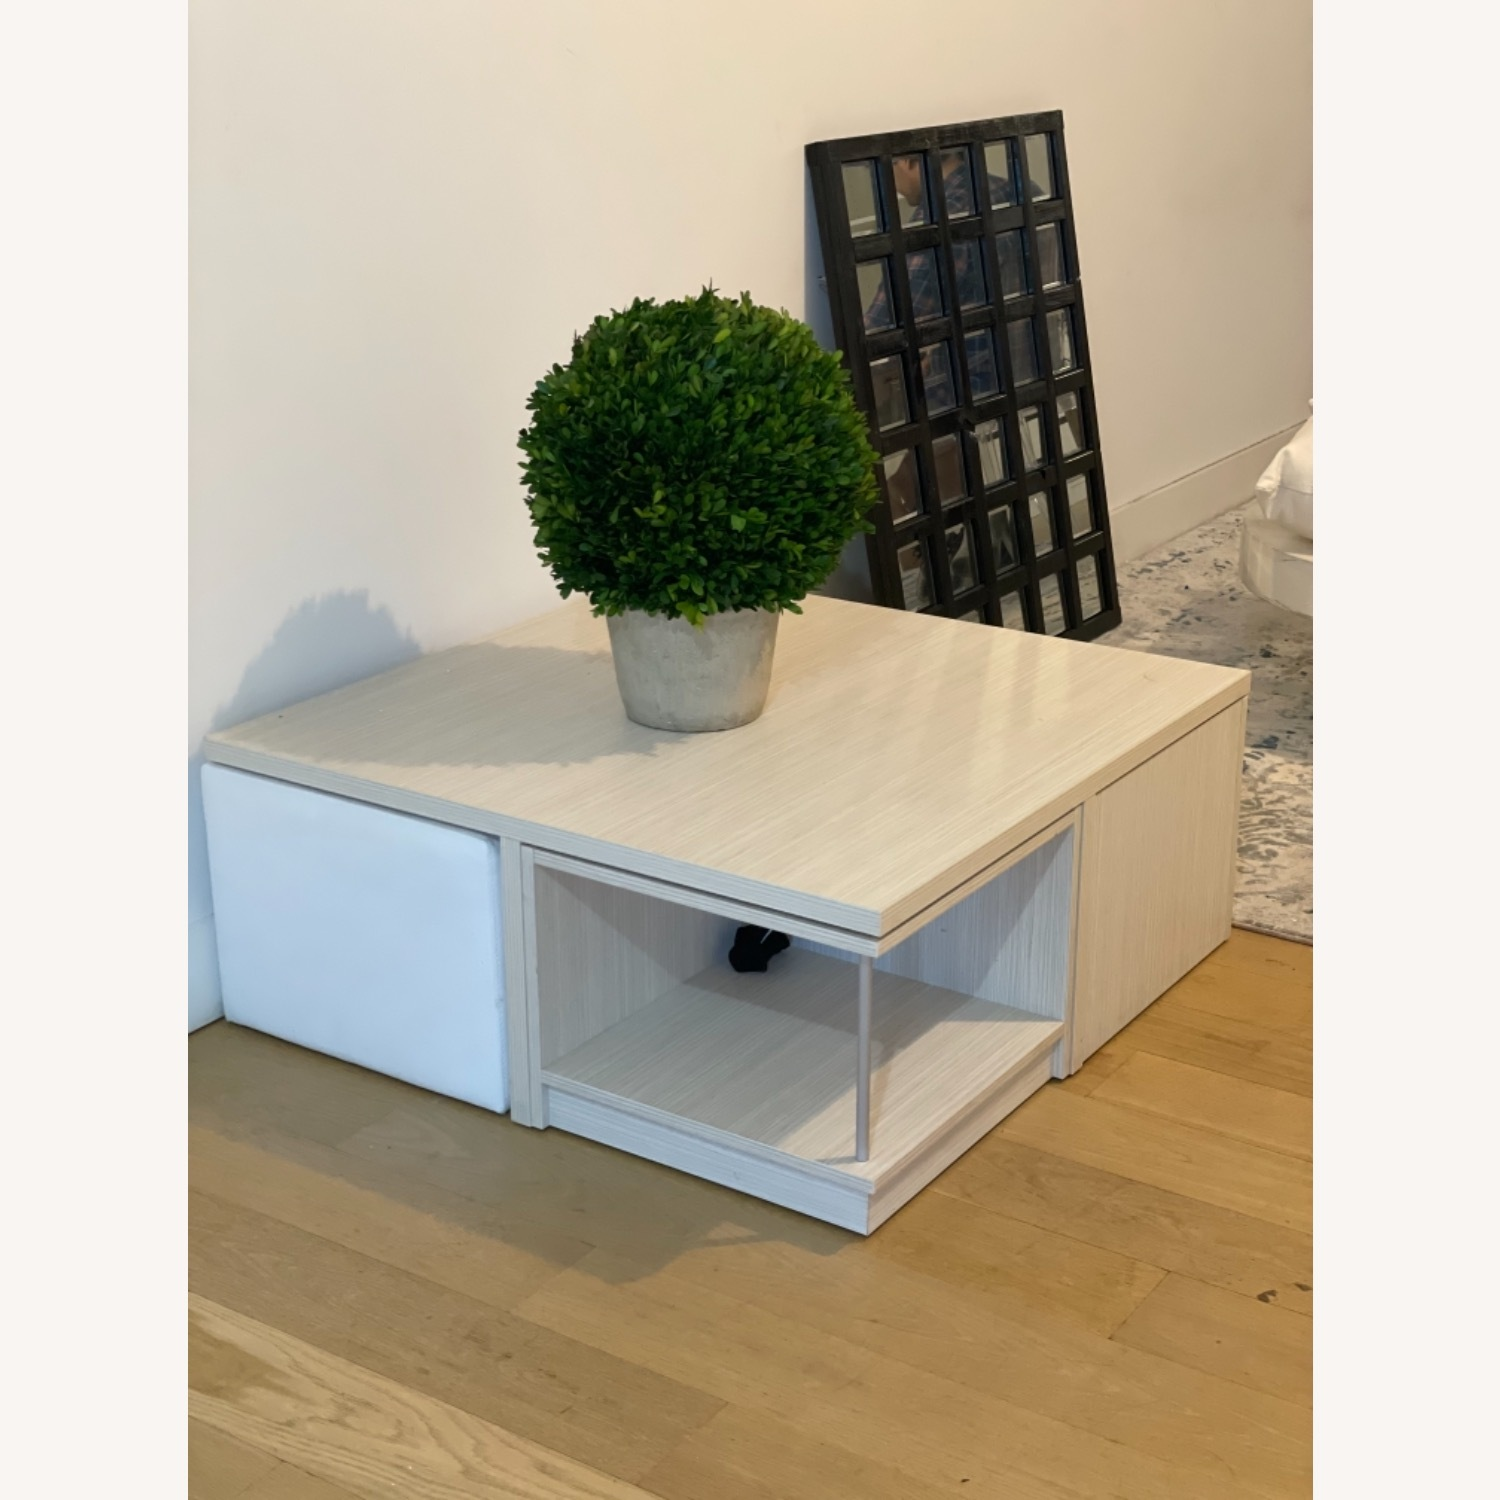 Modani Wooden Coffee Table with Ottoman Stools - image-3